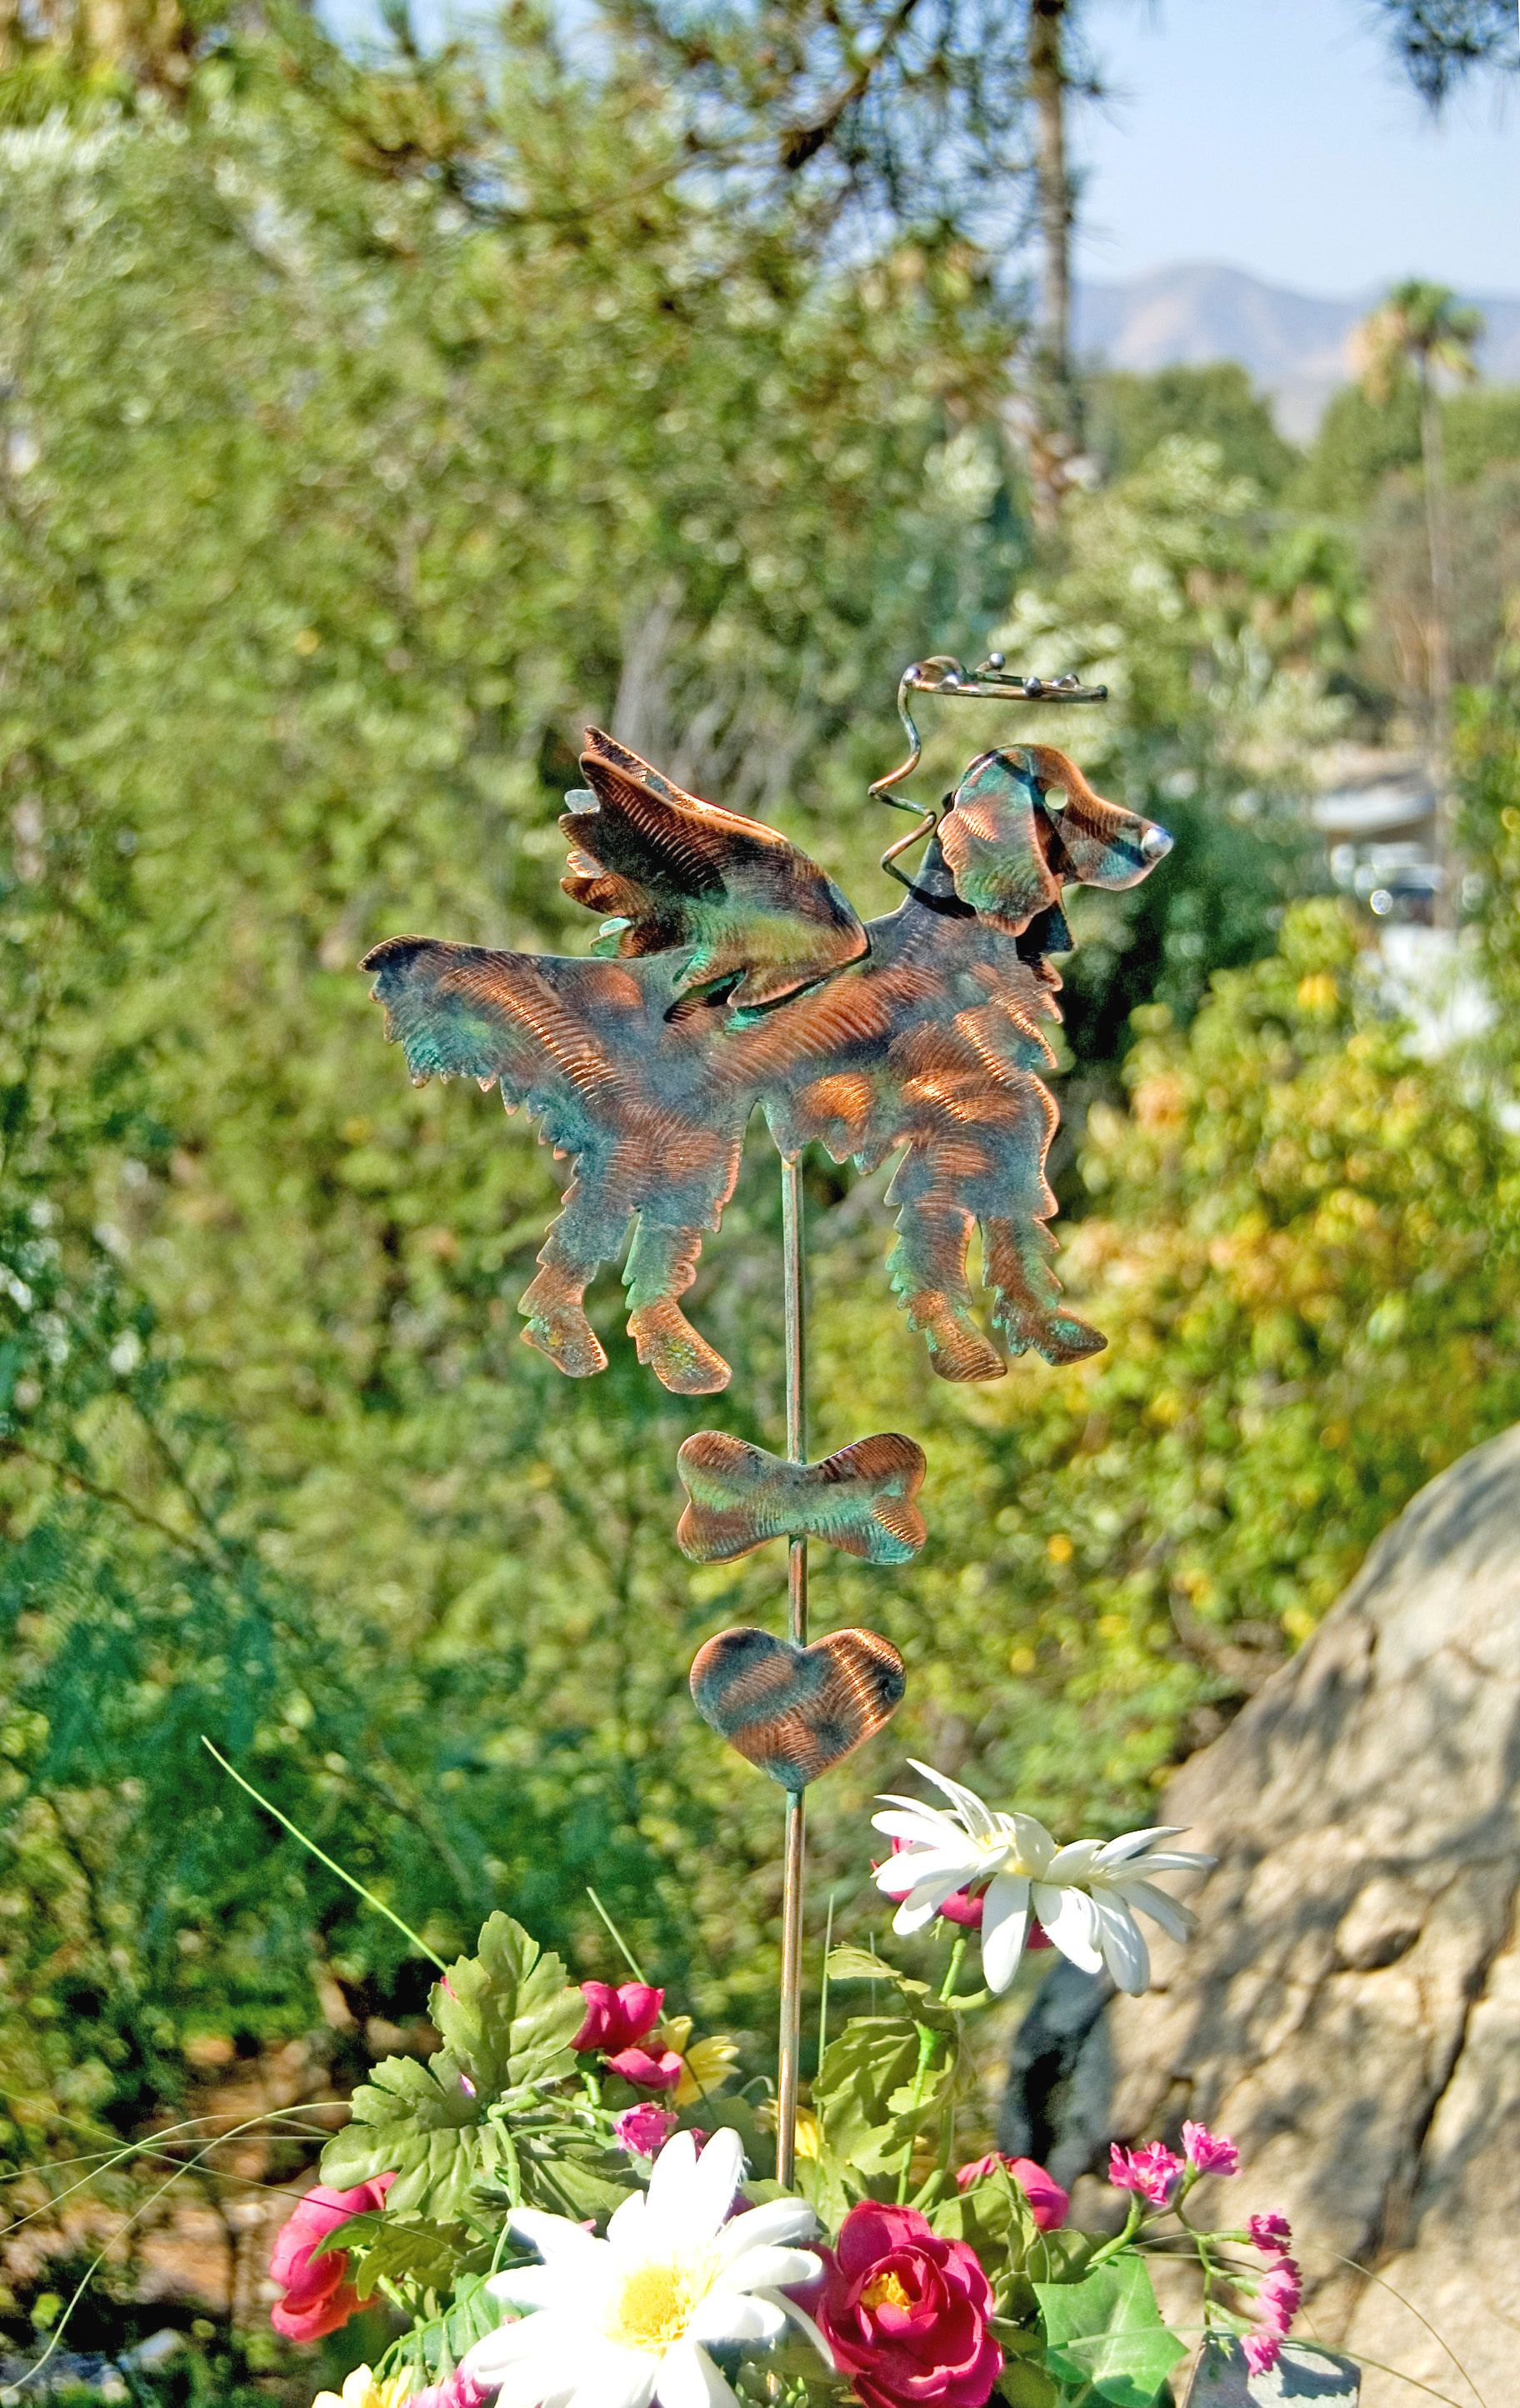 Golden Retriever Garden Art Pet Memorial Garden Stake, Metal Garden Art,  Copper Dog Grave